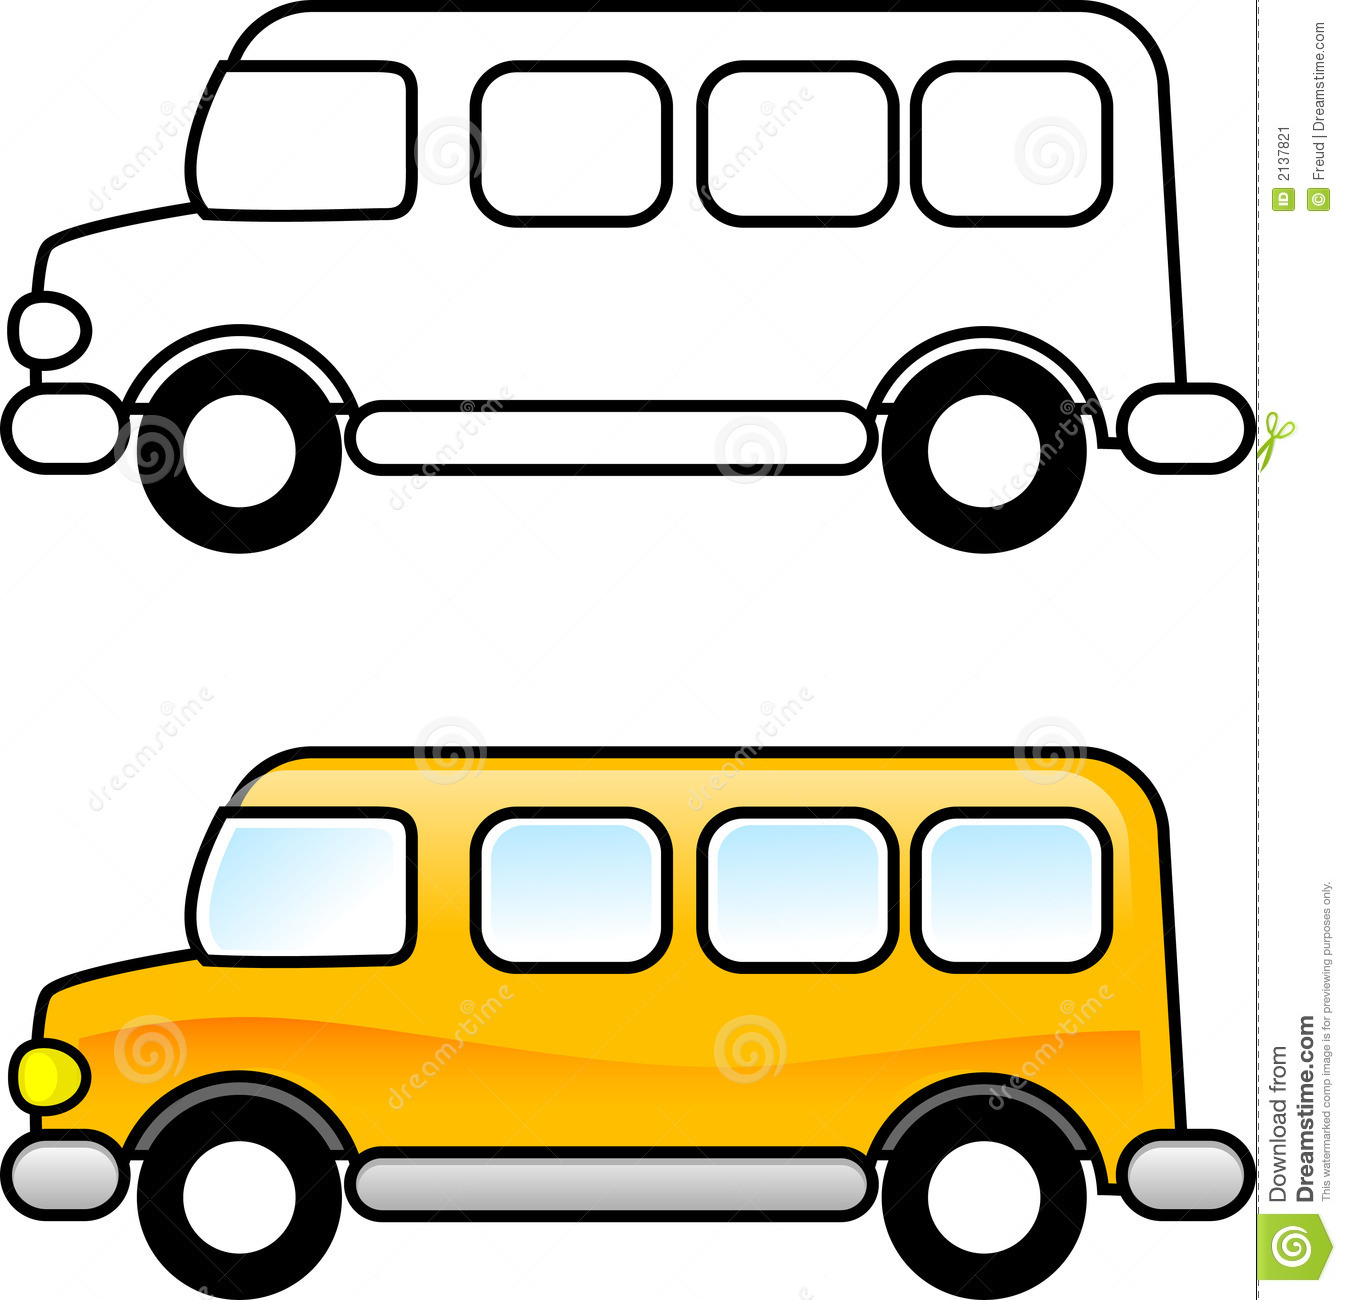 free clip art school bus clipart panda free clipart images rh clipartpanda com clip art school bus back to school clip art school bus back to school